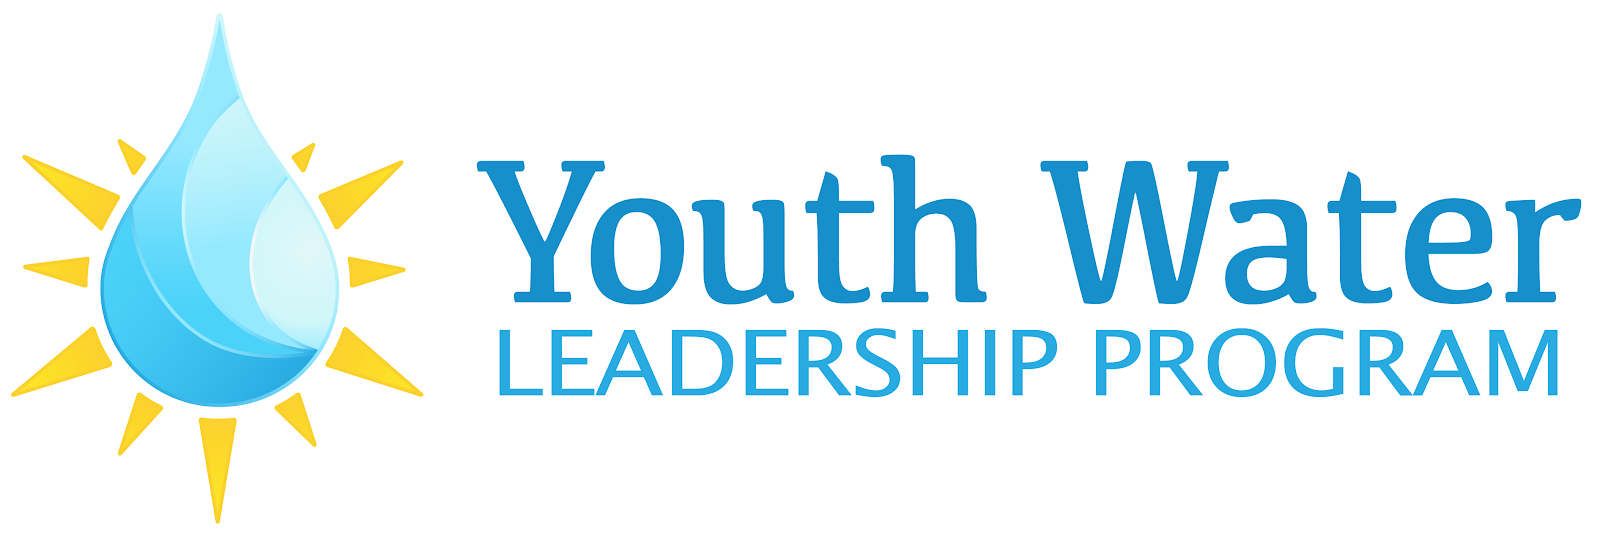 Youth Water Leadership Program